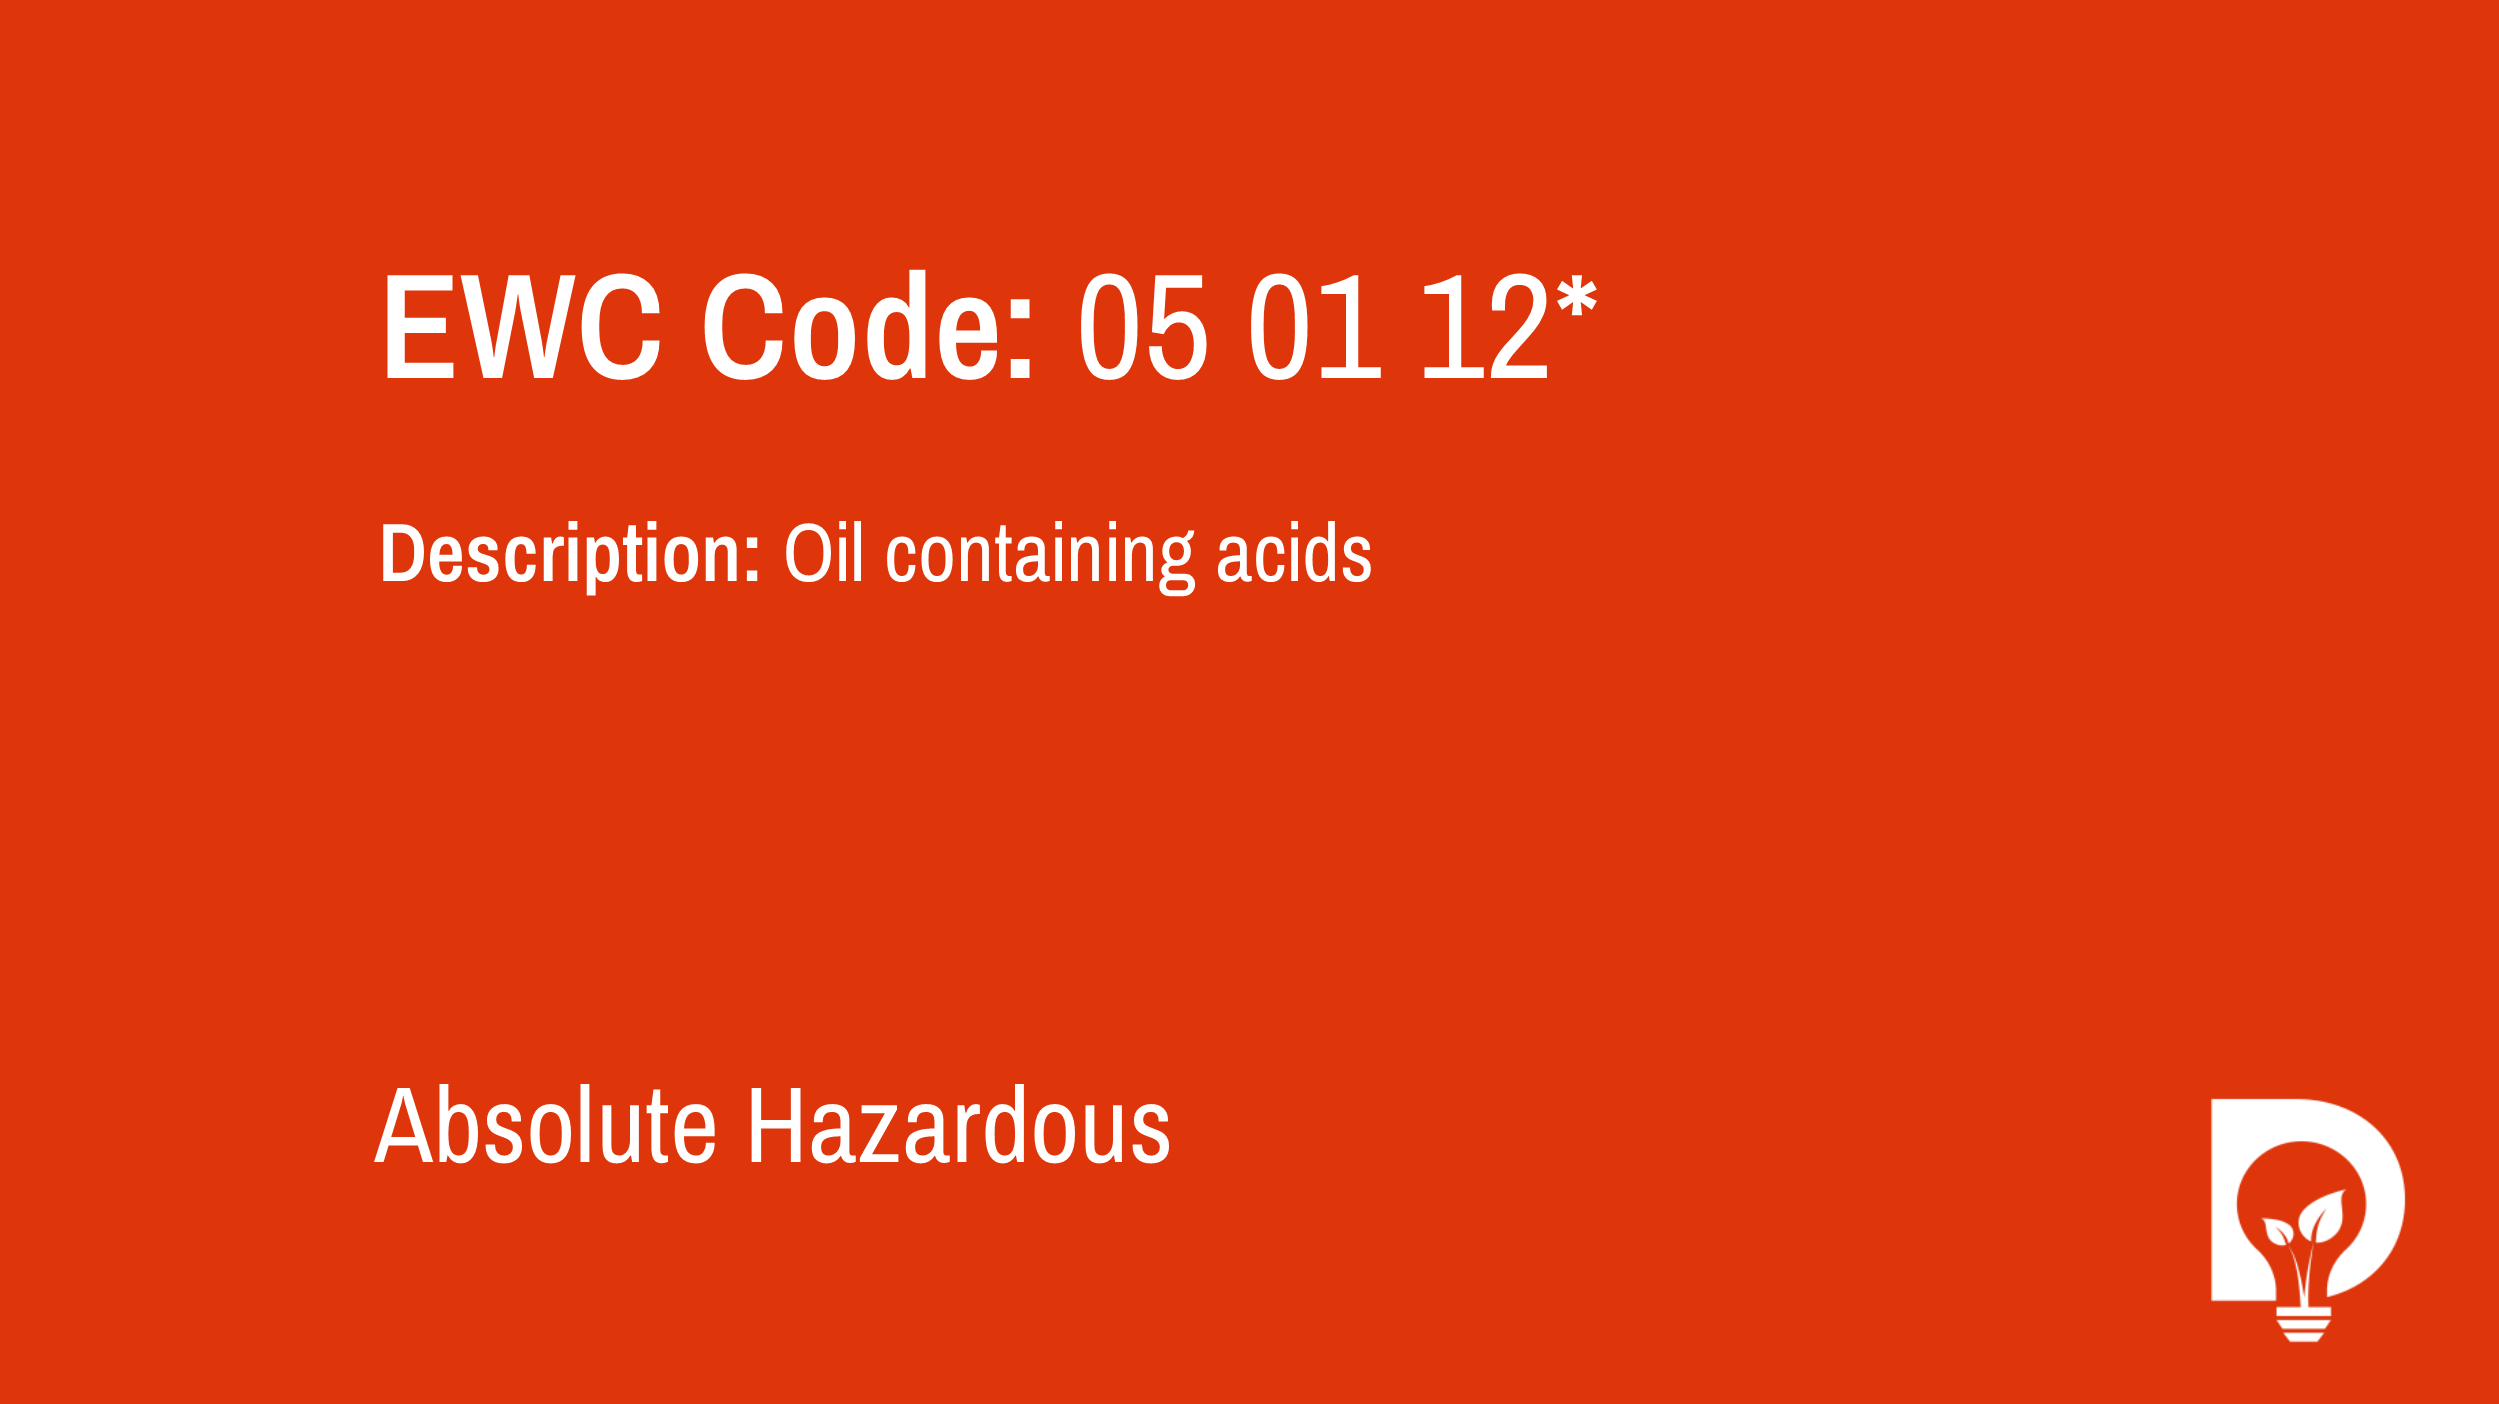 EWC Code: 05 01 12* - oil containing acids. Type: Absolute Hazardous. Image by Dsposal